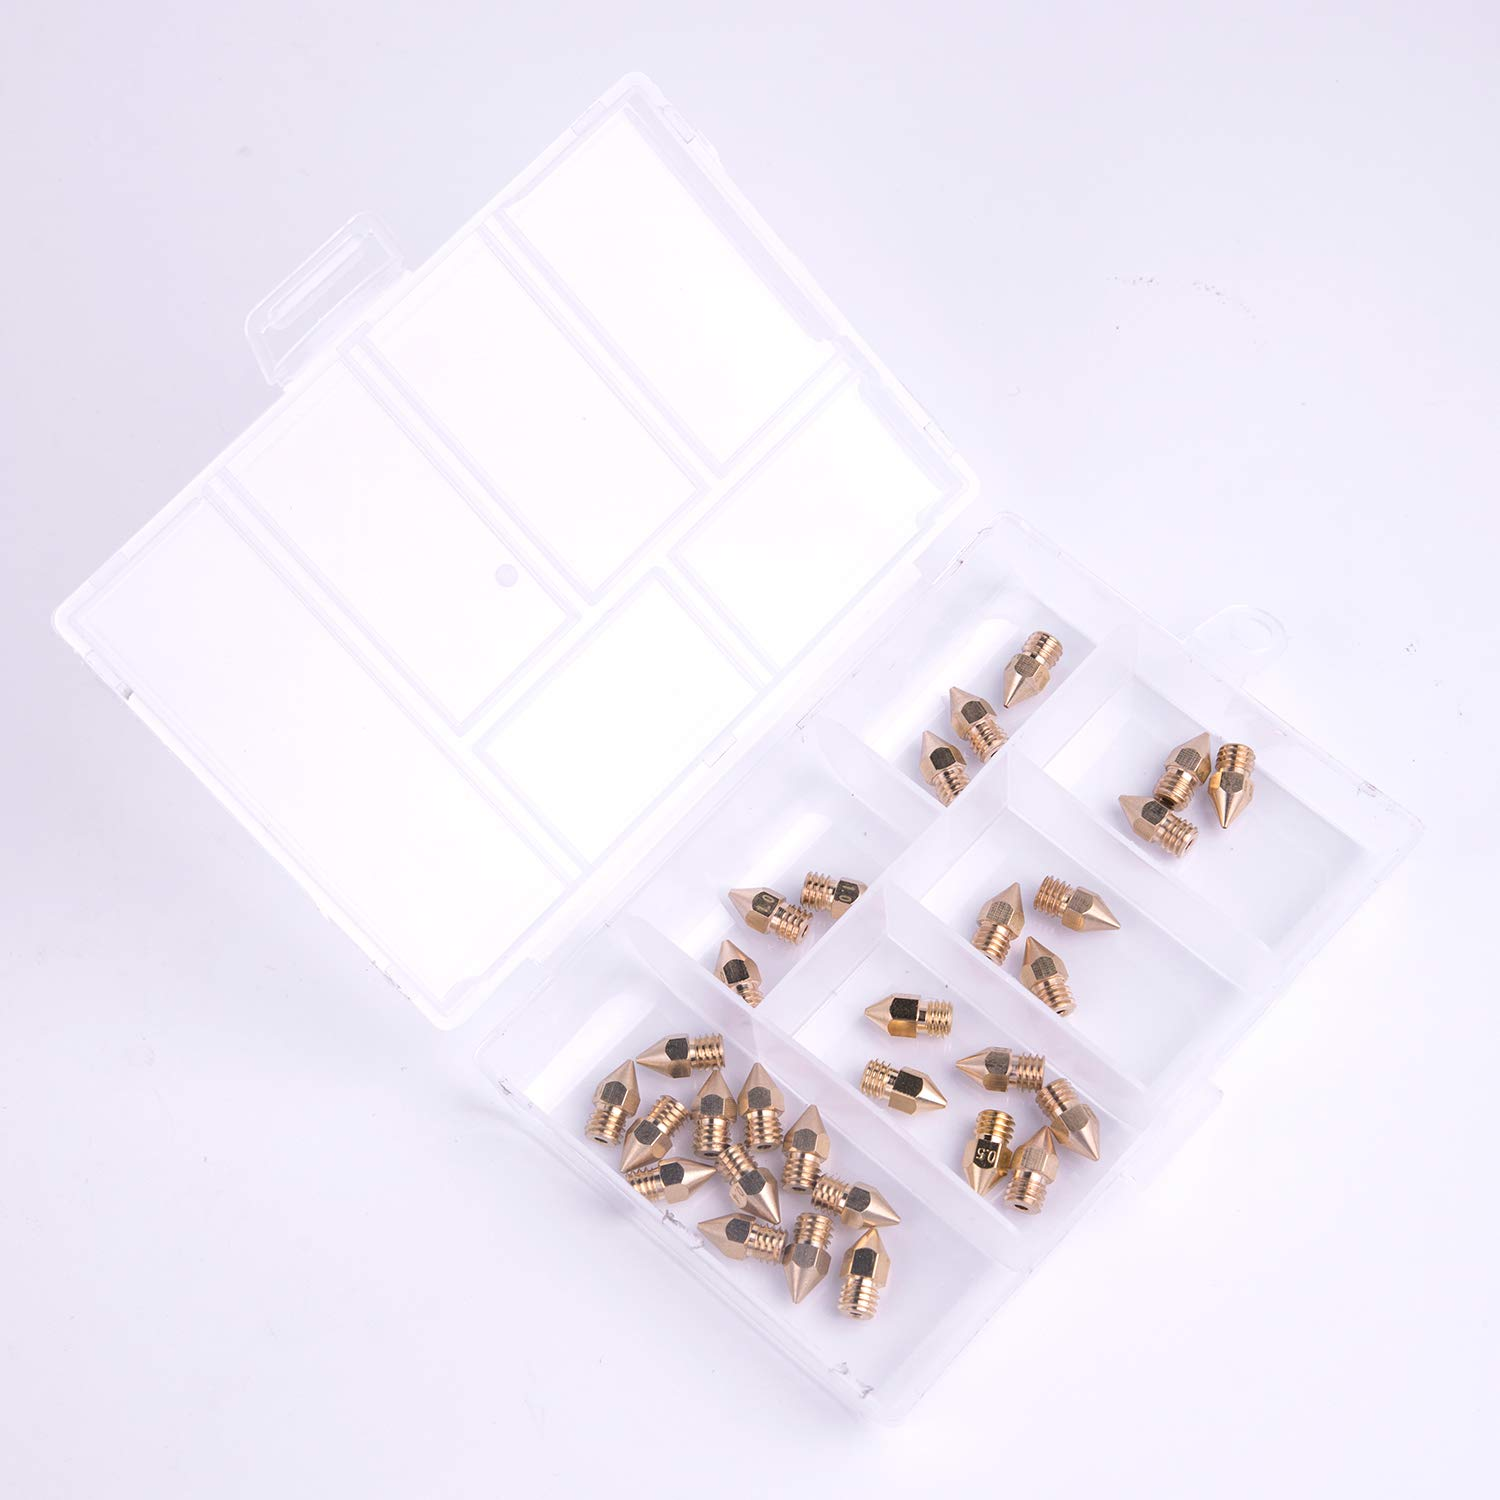 30 Pack 3D Printer Nozzles 0.2mm 0.3mm 0.4mm 0.5mm 0.6mm 0.8mm 1.0mm Print Head with Storage Box for Makerbot Creality CR-10 by Standie